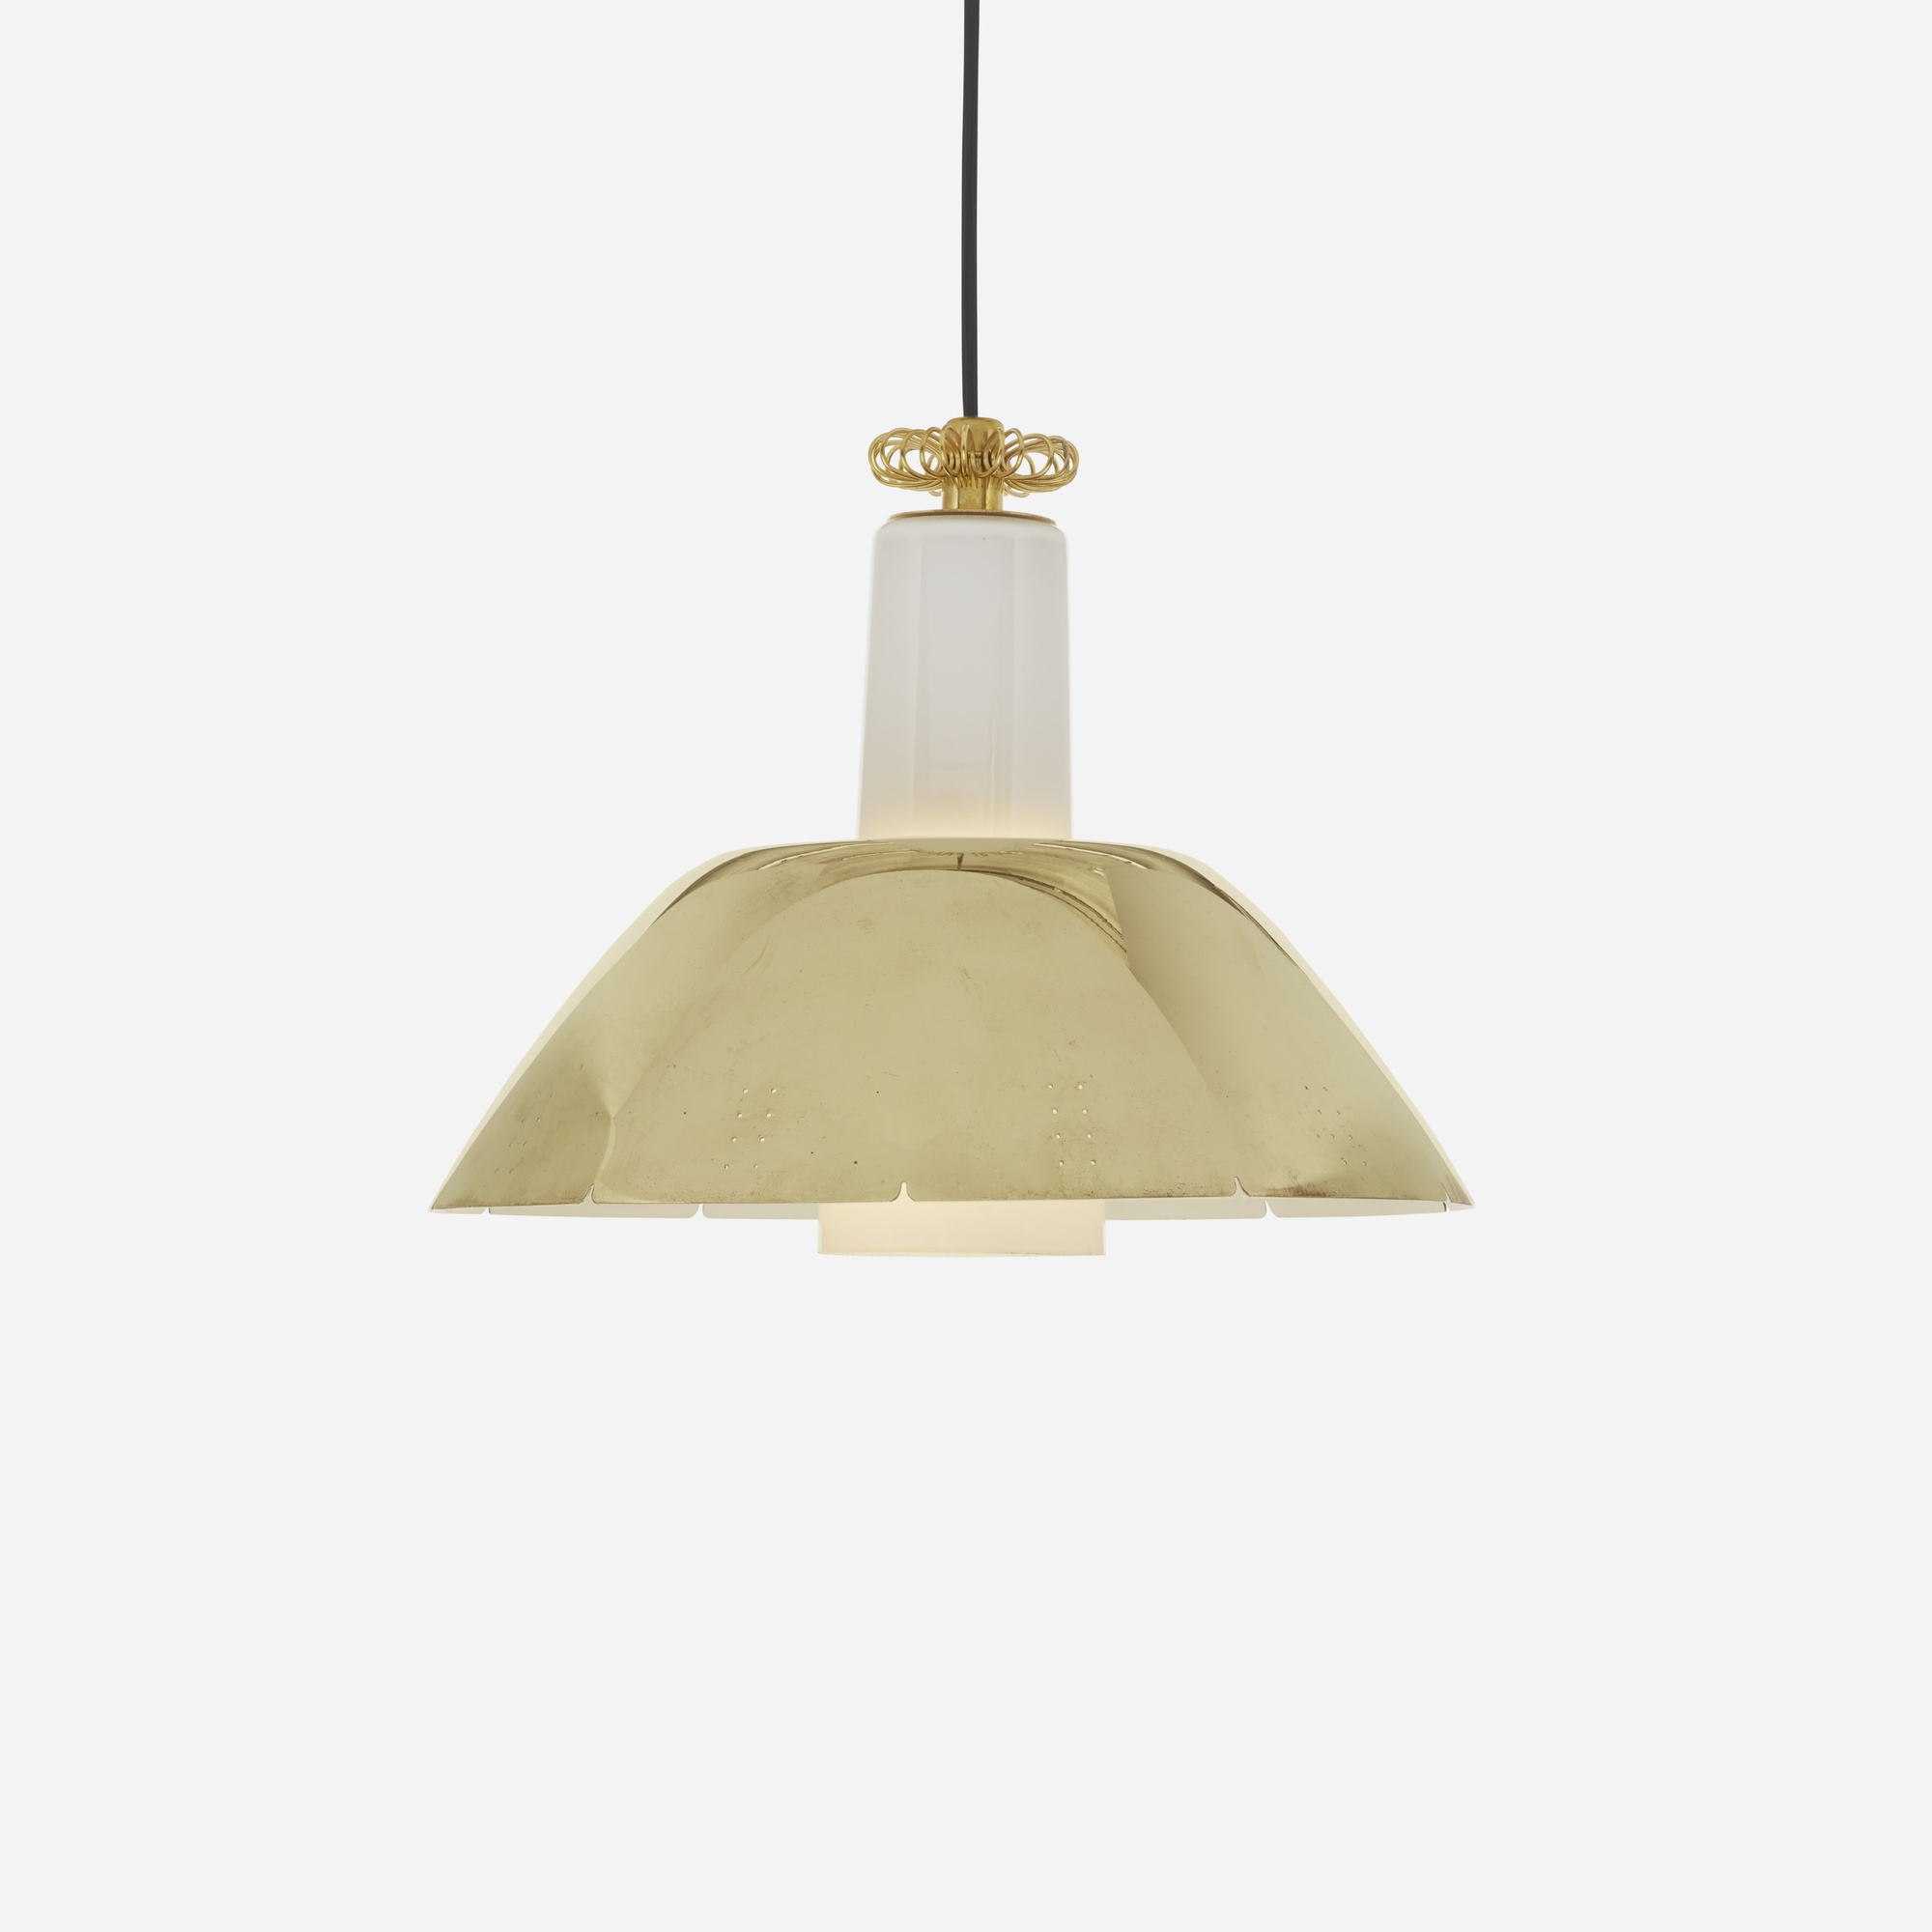 168: Paavo Tynell / ceiling lamp (1 of 1)